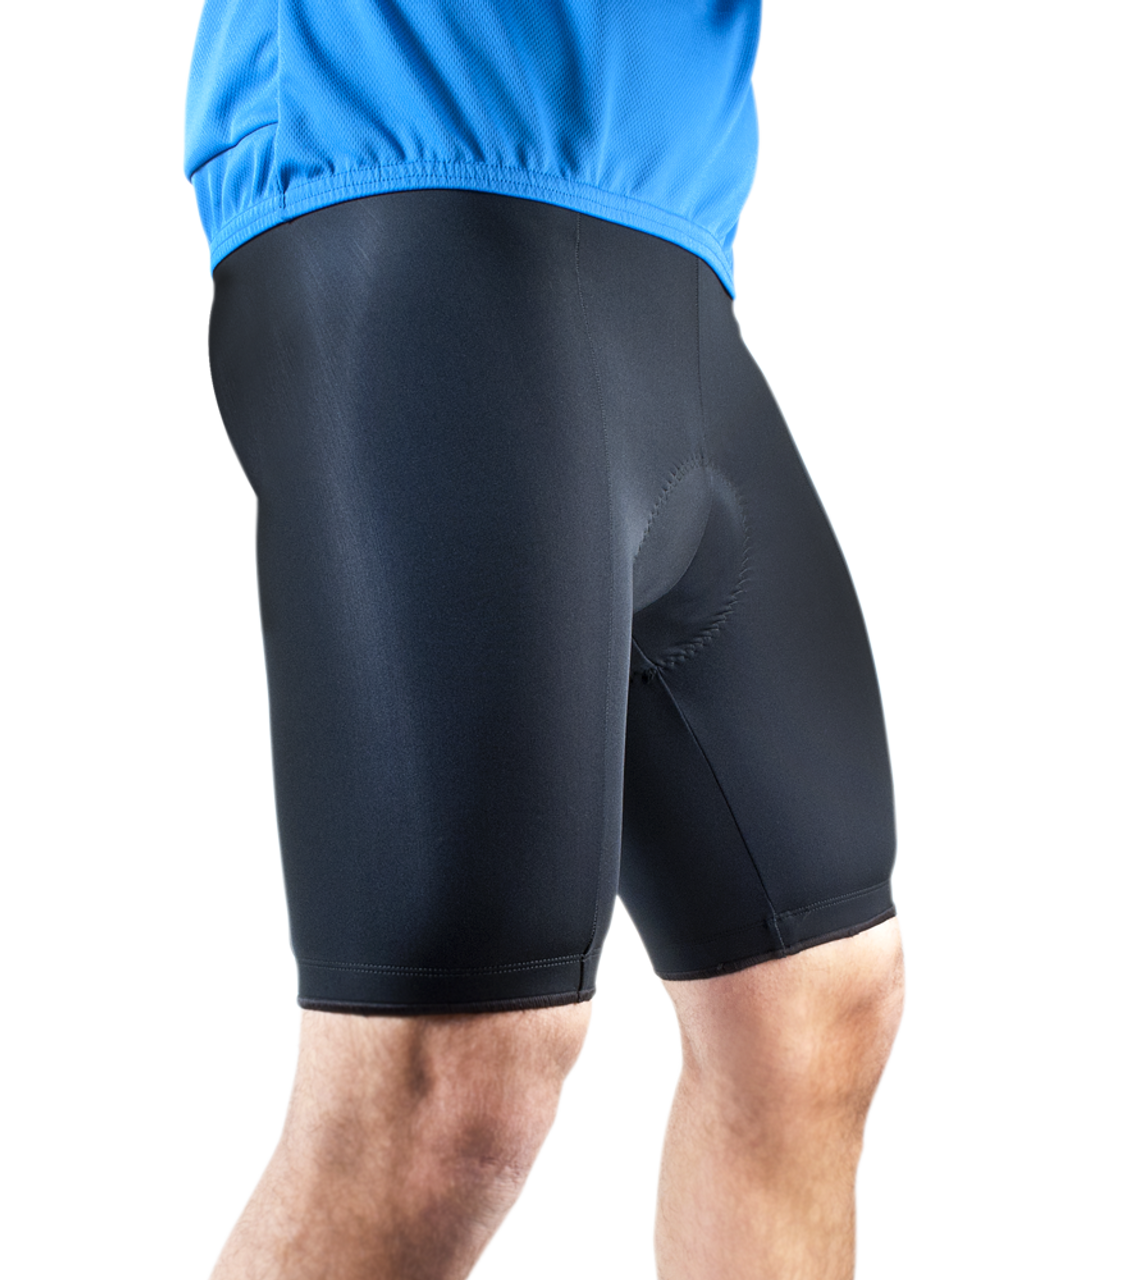 b5066ce0acde Men's Basic Made in the USA Inexpensive Black Padded Cycling Shorts